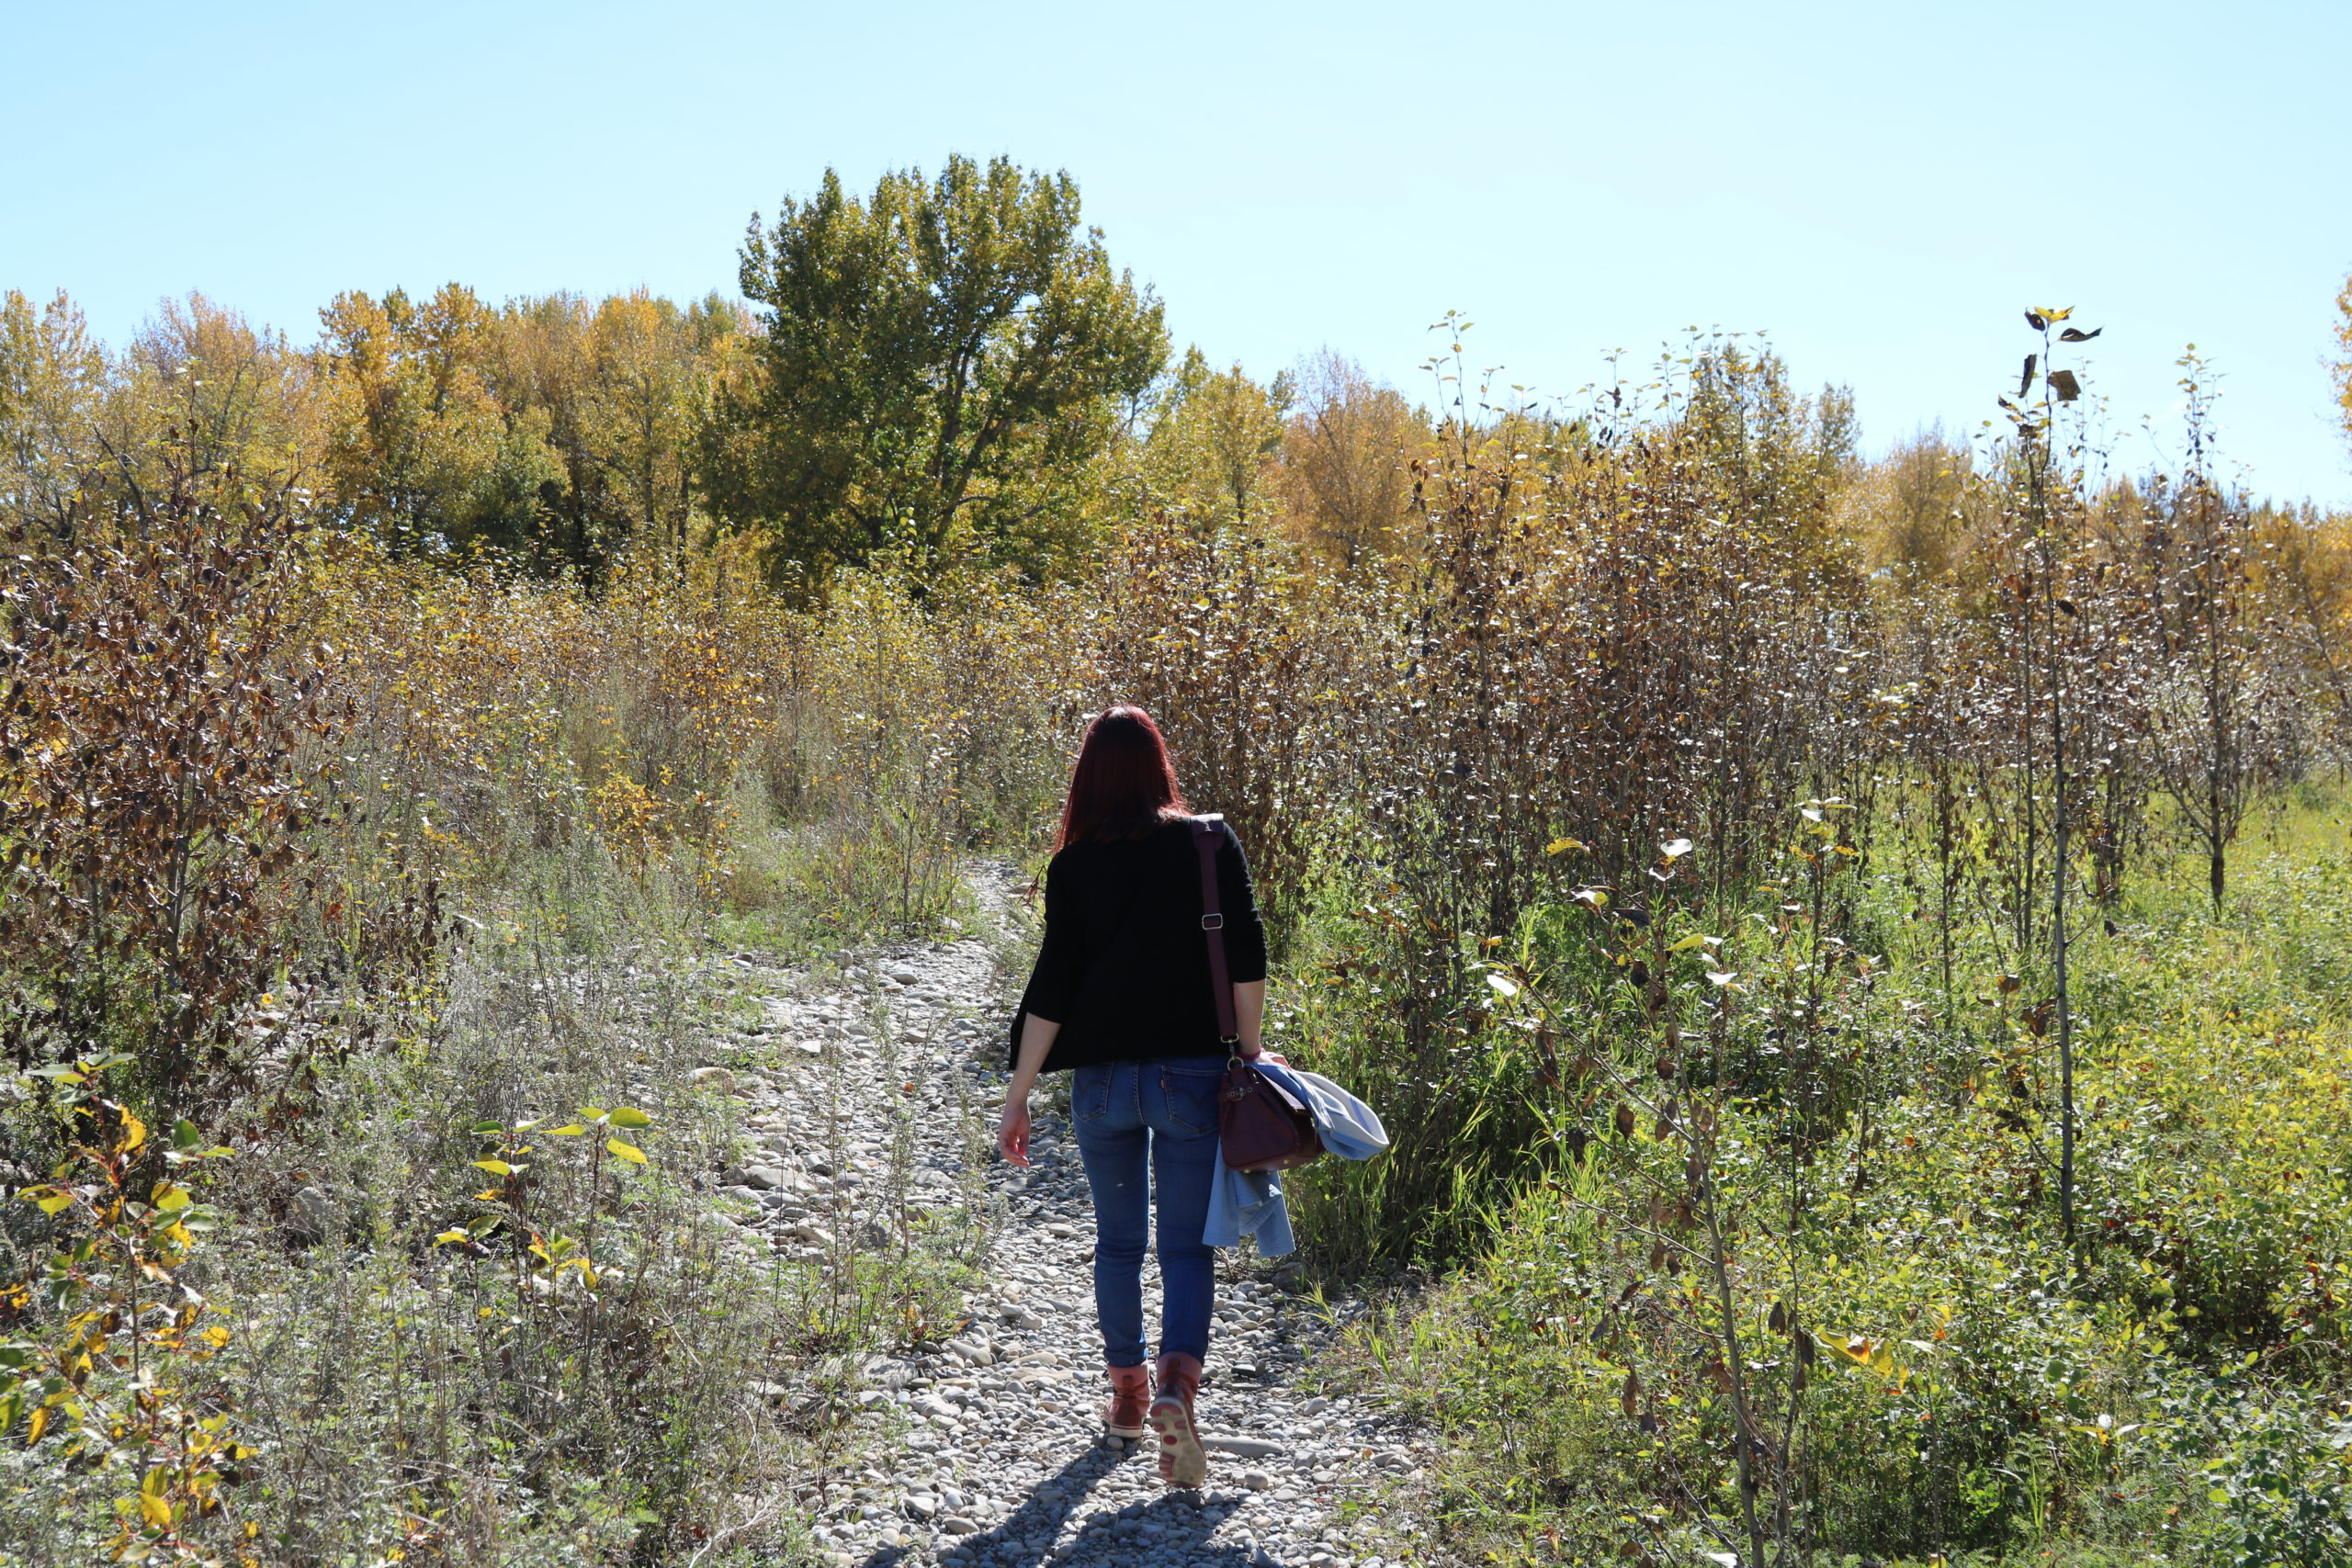 This post is here to offer hands on advice in a scary time. It can feel like we're battling a lonely journey, like I am in this picture as I walk through Fish Creek Park, with weeds springing up all around me. But let's be alone together.